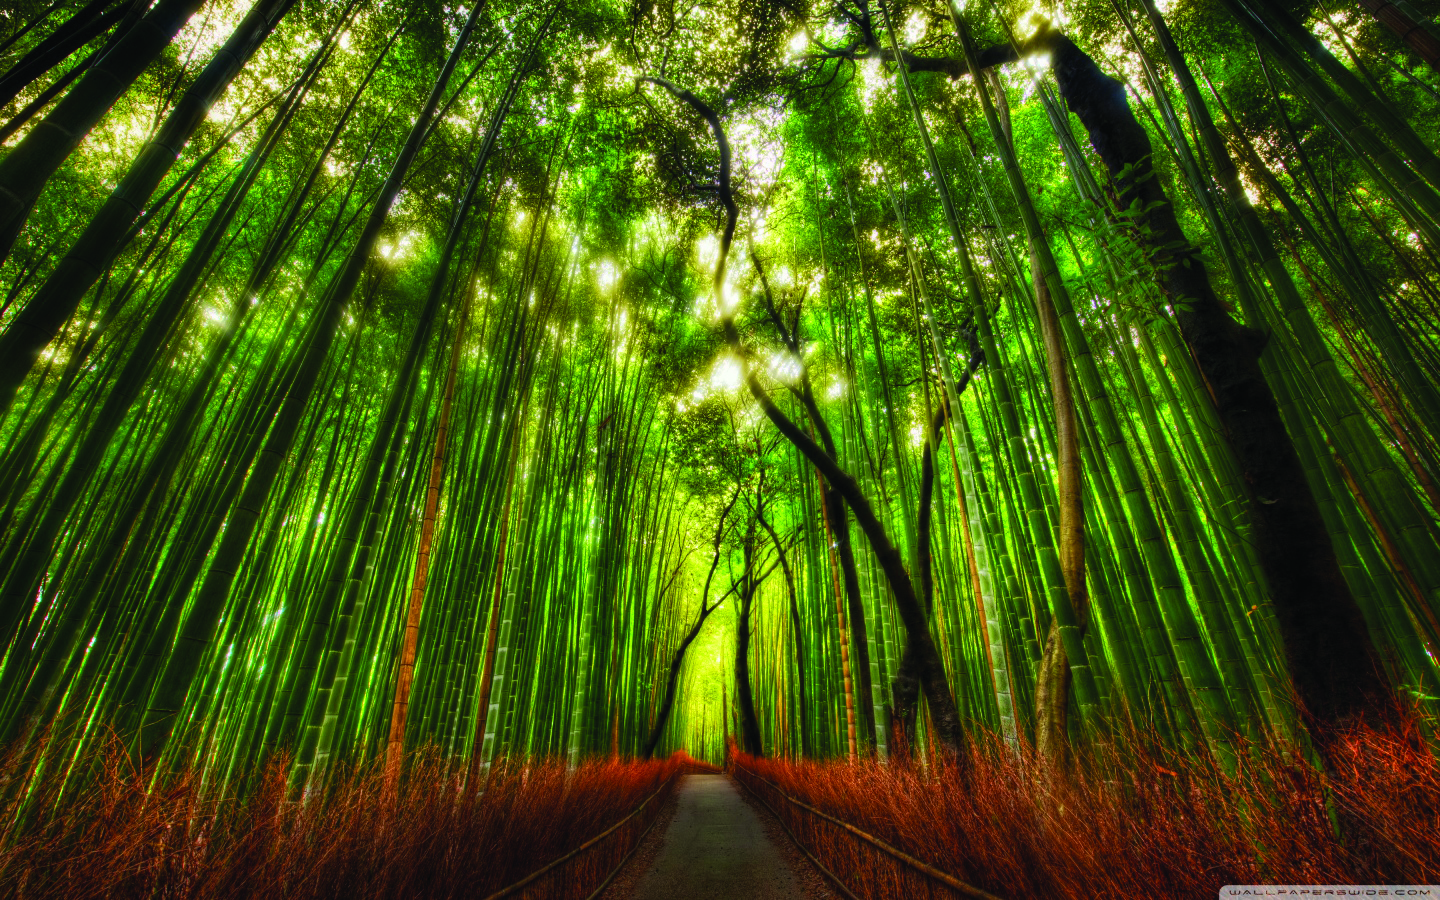 bamboo_forest-wallpaper-1440x900.jpg